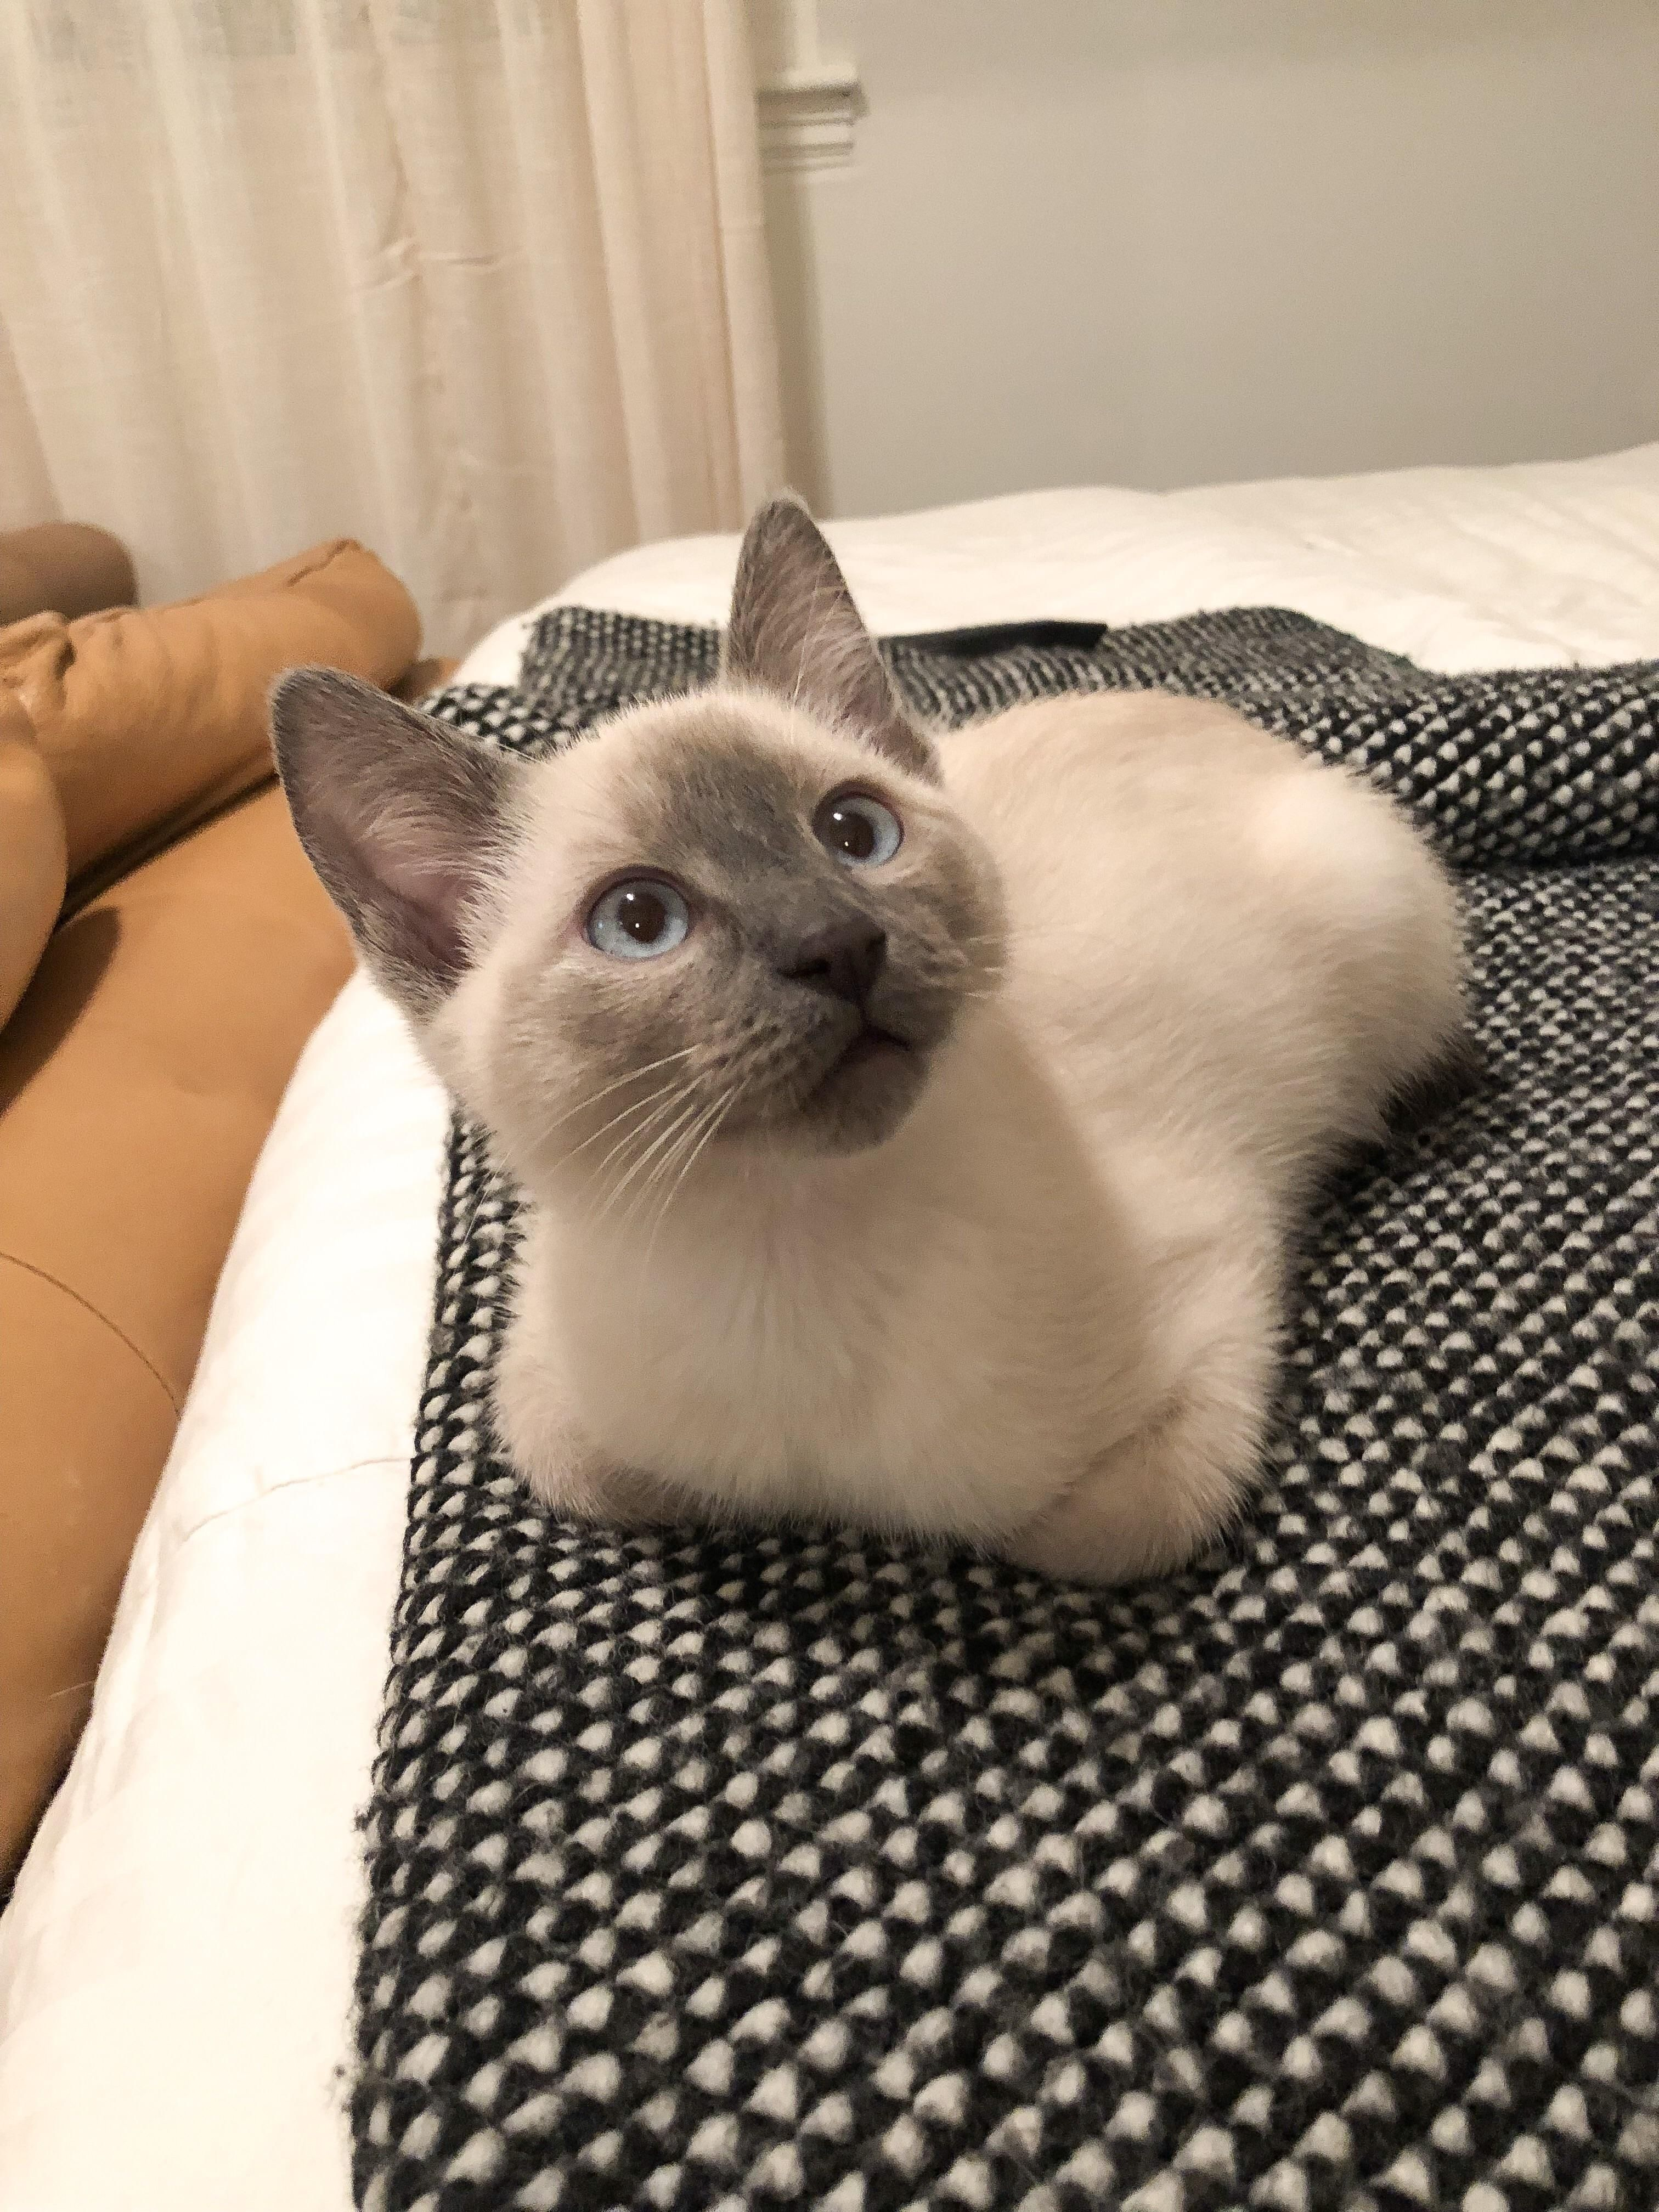 I Think This Is The Definition Of A Loaf Hello There Bright People Are You Catlover Or Have You Any Pretty C Cute Cats Pretty Cats Cute Cats And Kittens